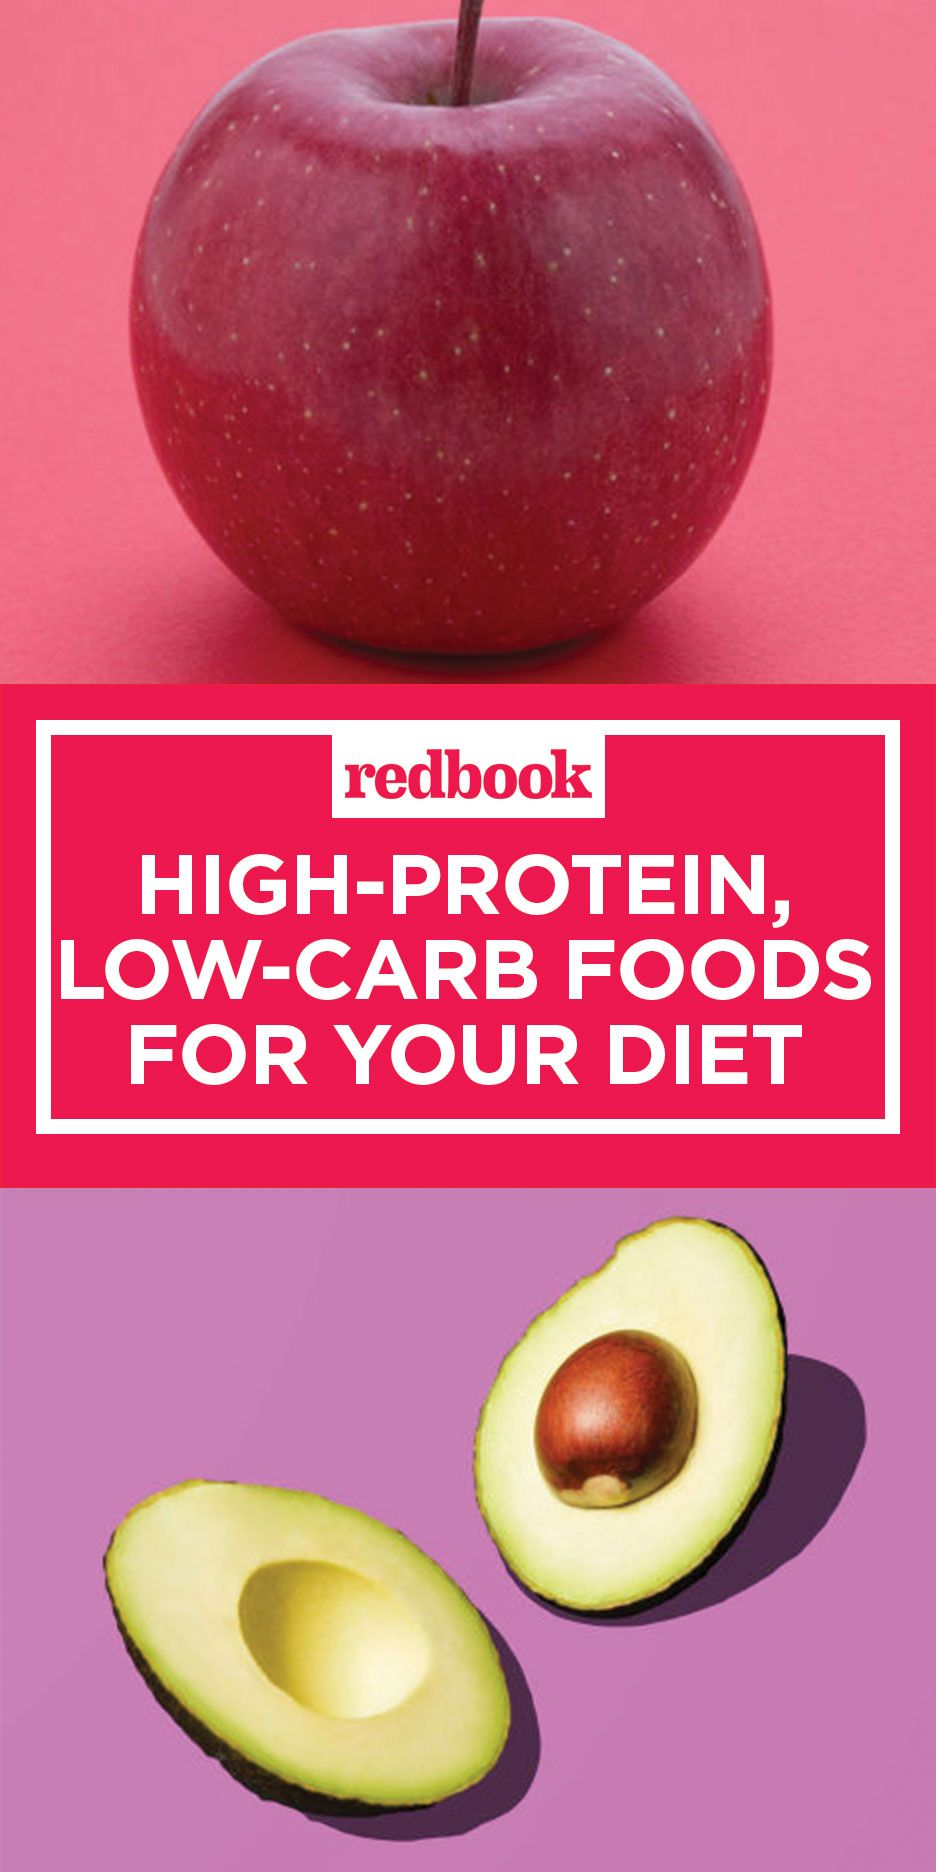 15 High-Protein, Low-Carb Foods to Add Into Your Diet forecast